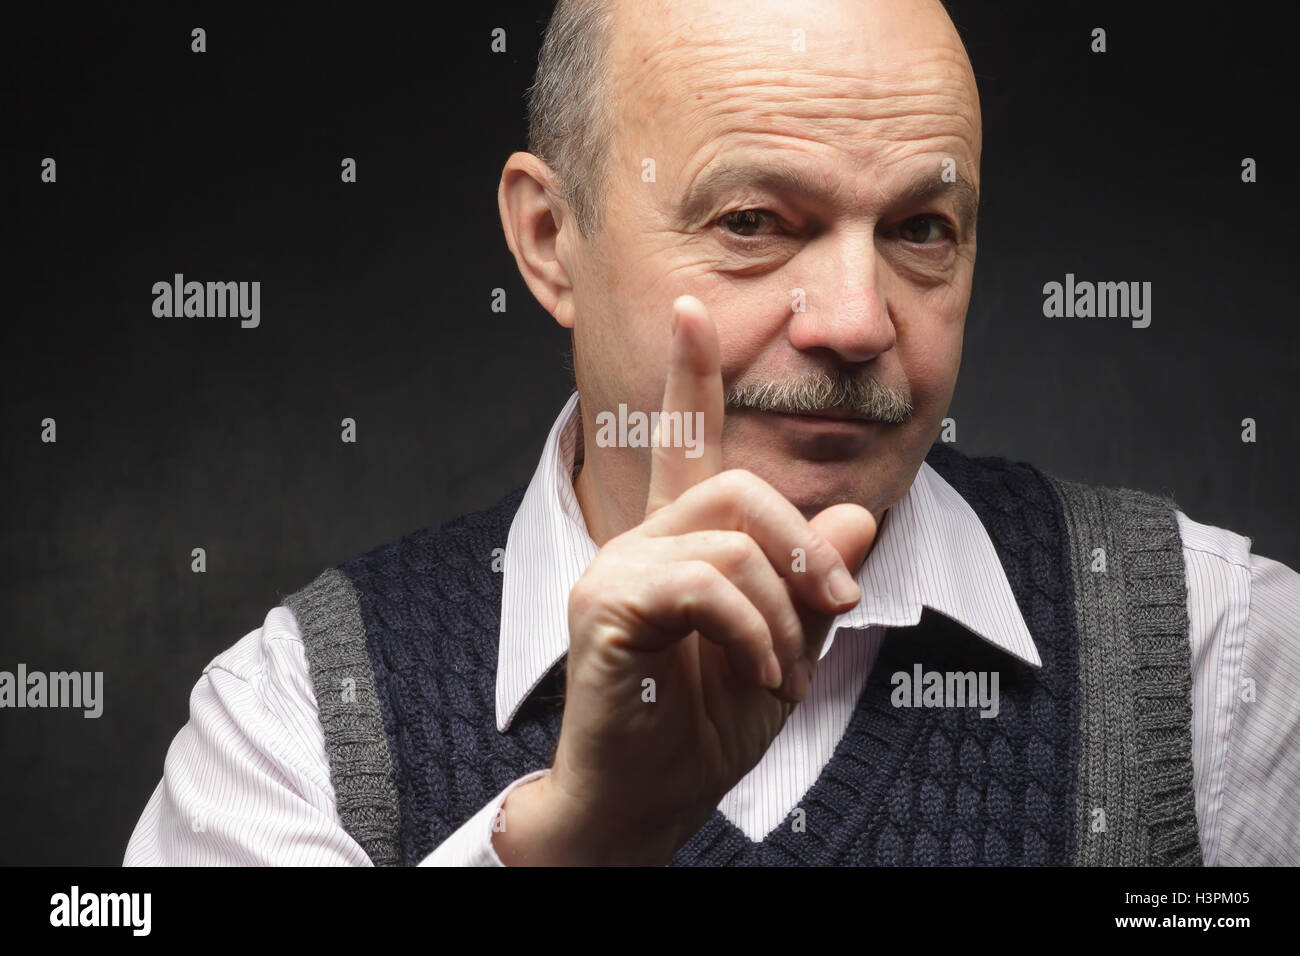 elderly man in a jacket and tie and looks strictly prohibits doing something - Stock Image